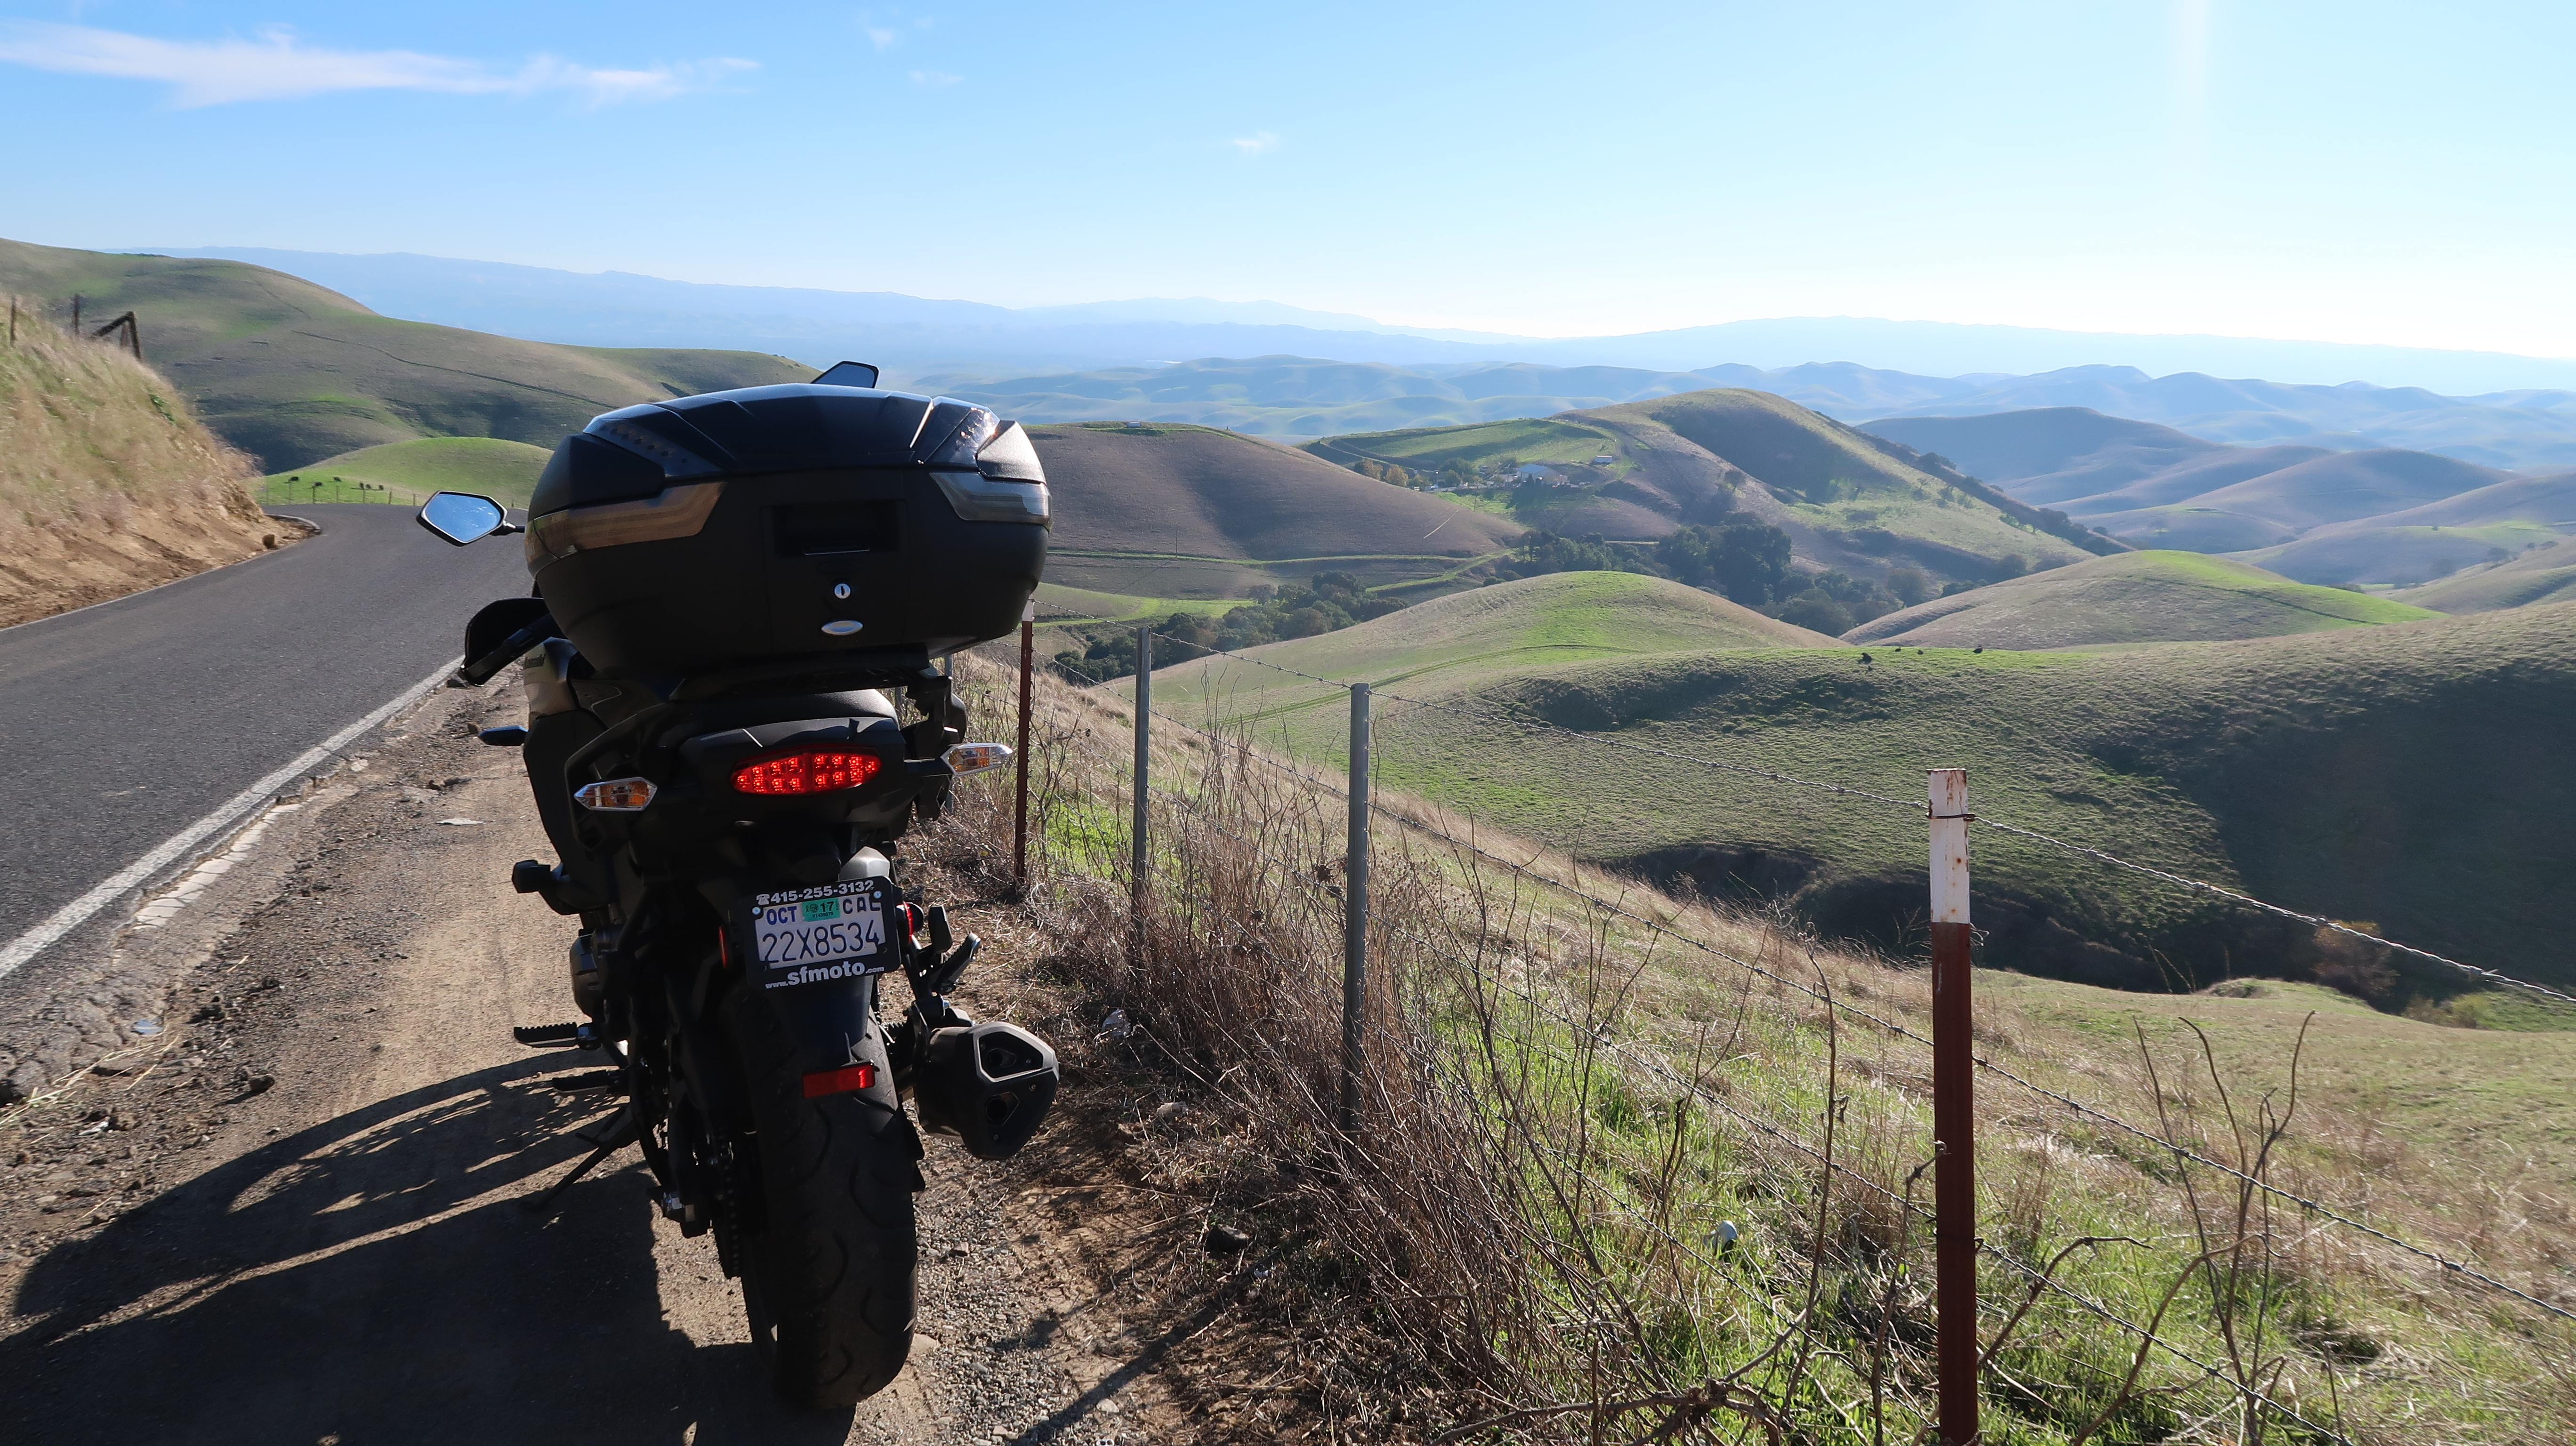 Kawasaki Versys 1000 LT: the hills South of the Morgan Territory